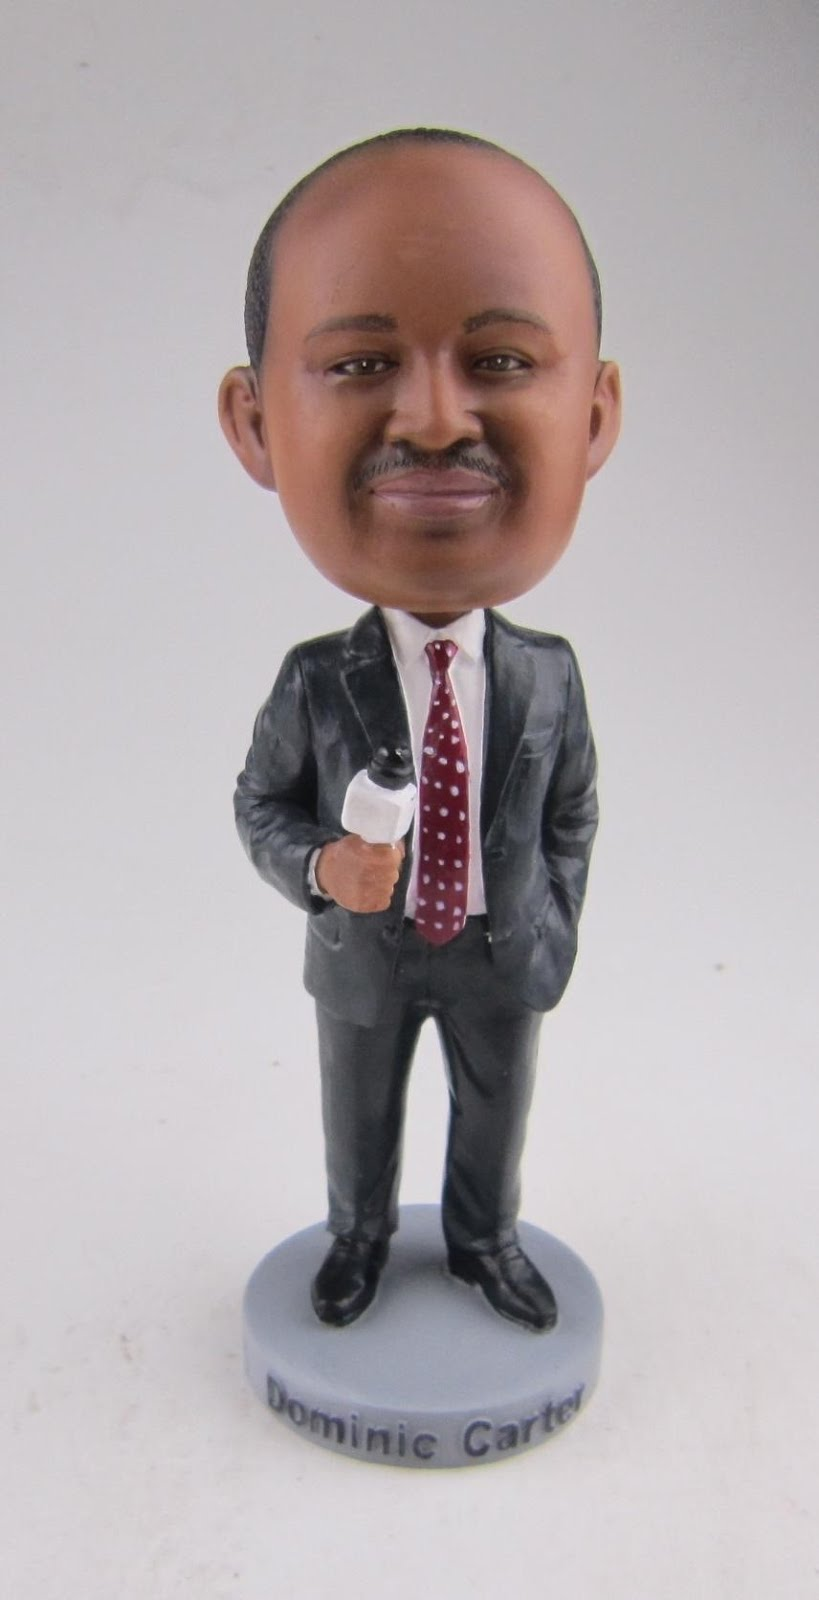 Dominic Carter Bobblehead